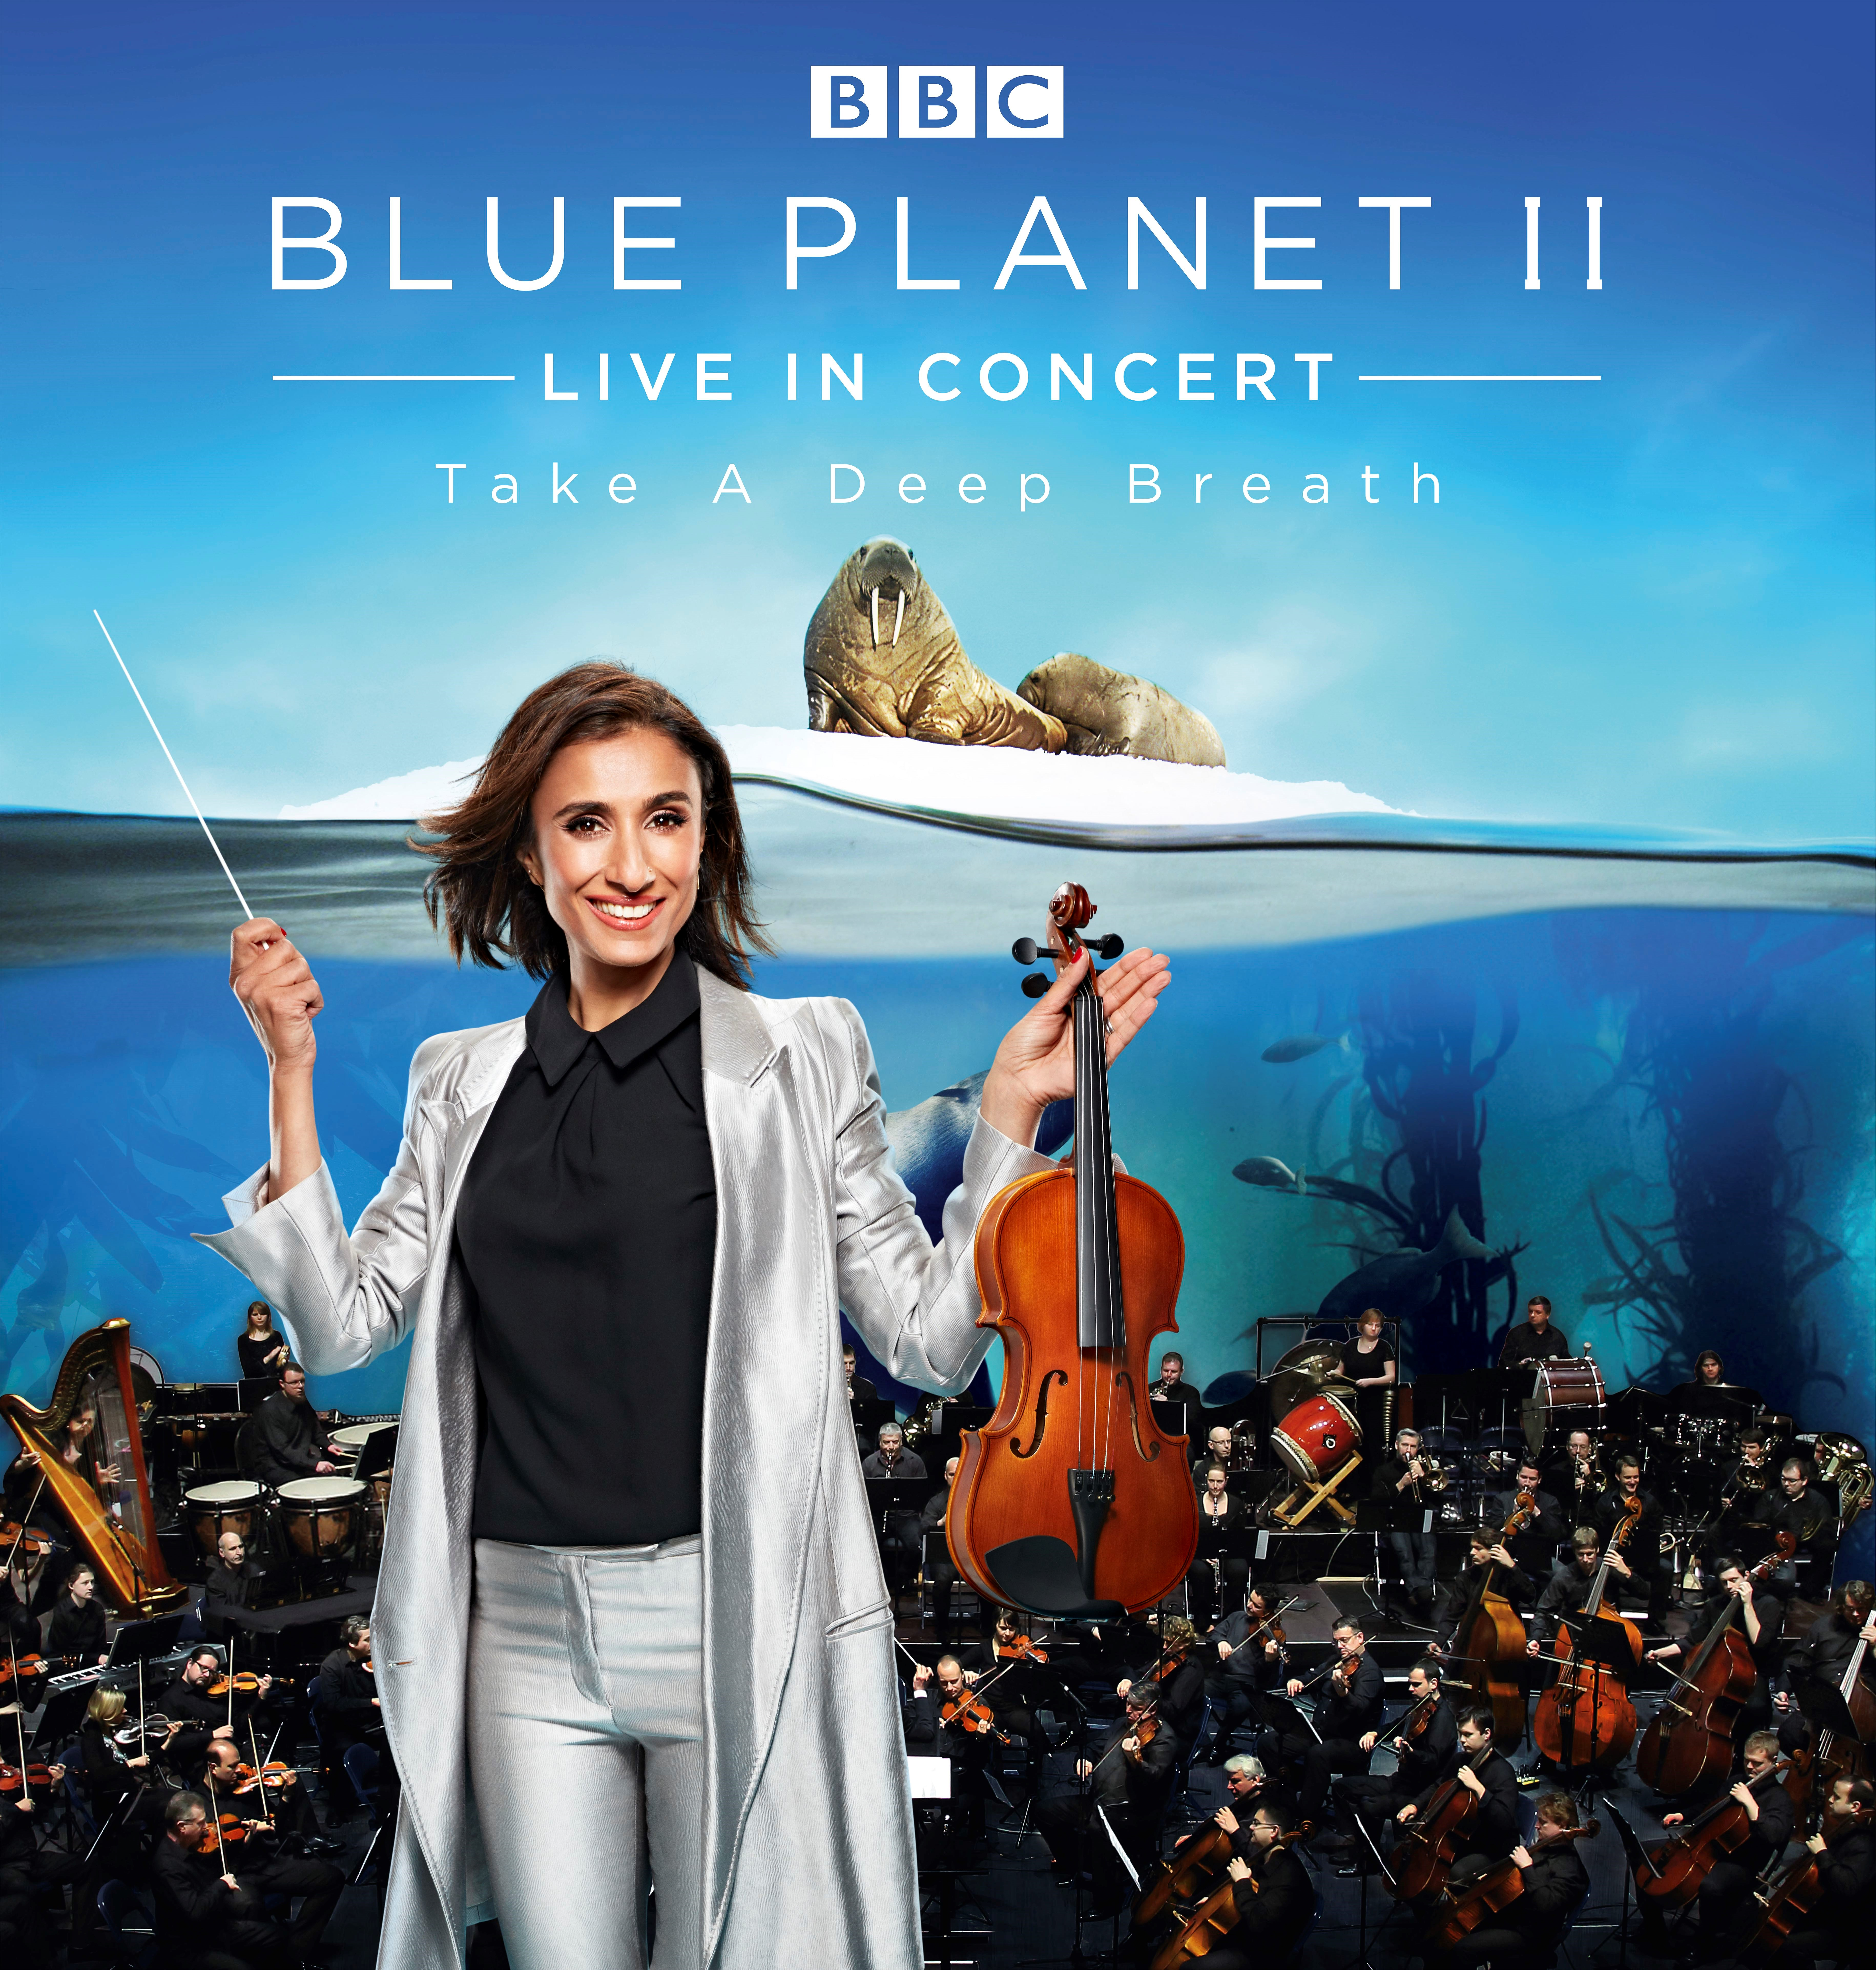 Anita Rani, Blue Planet II Live In Concert